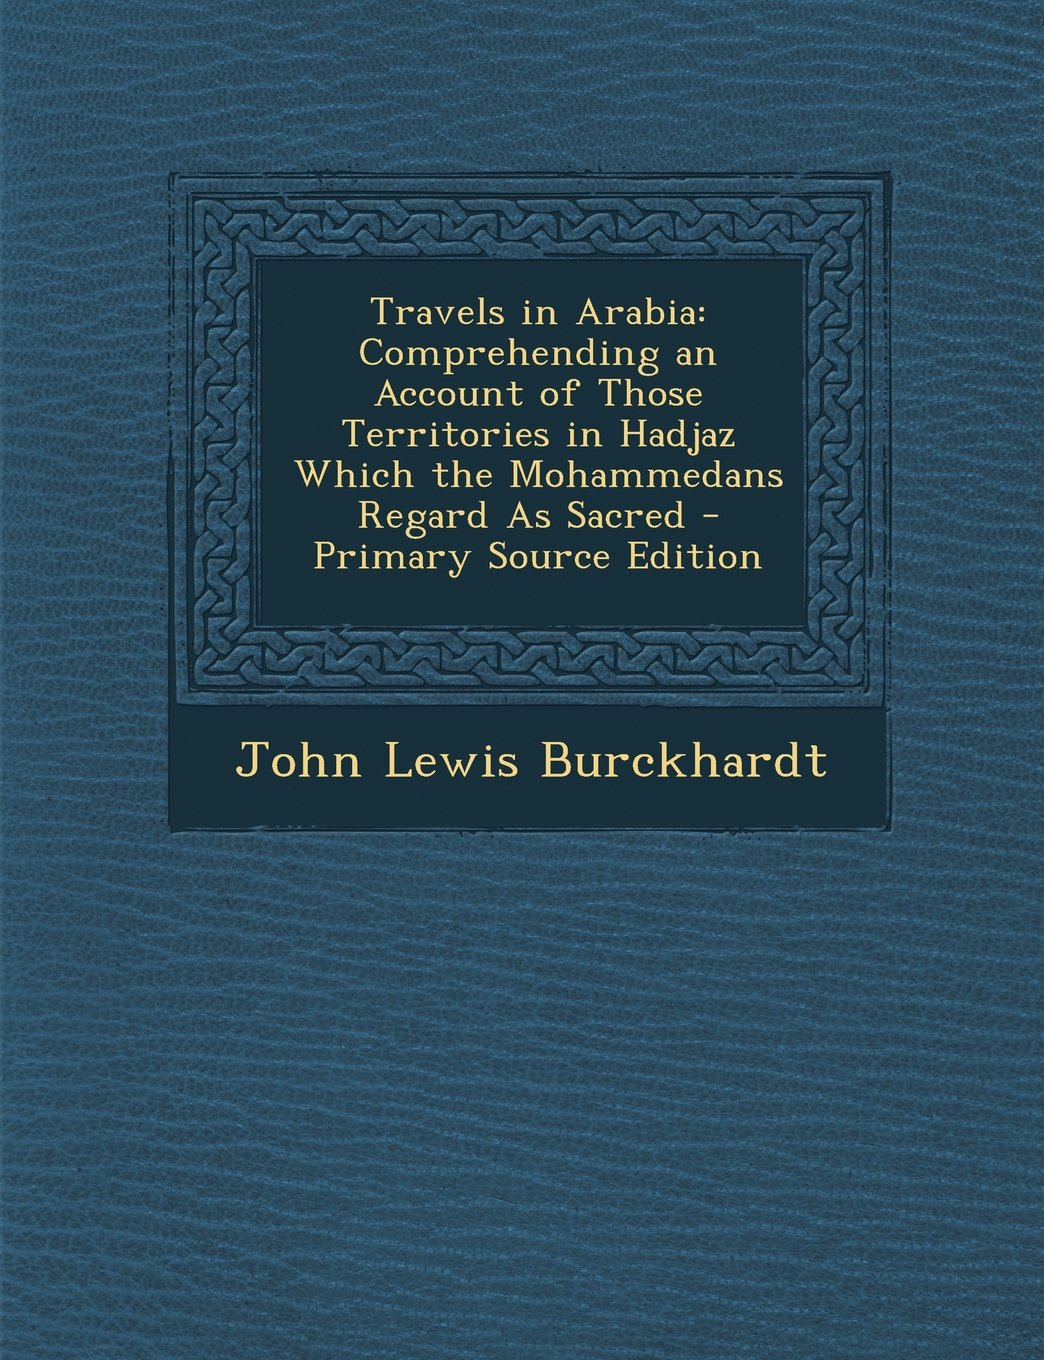 Read Online Travels in Arabia: Comprehending an Account of Those Territories in Hadjaz Which the Mohammedans Regard as Sacred - Primary Source Editio PDF